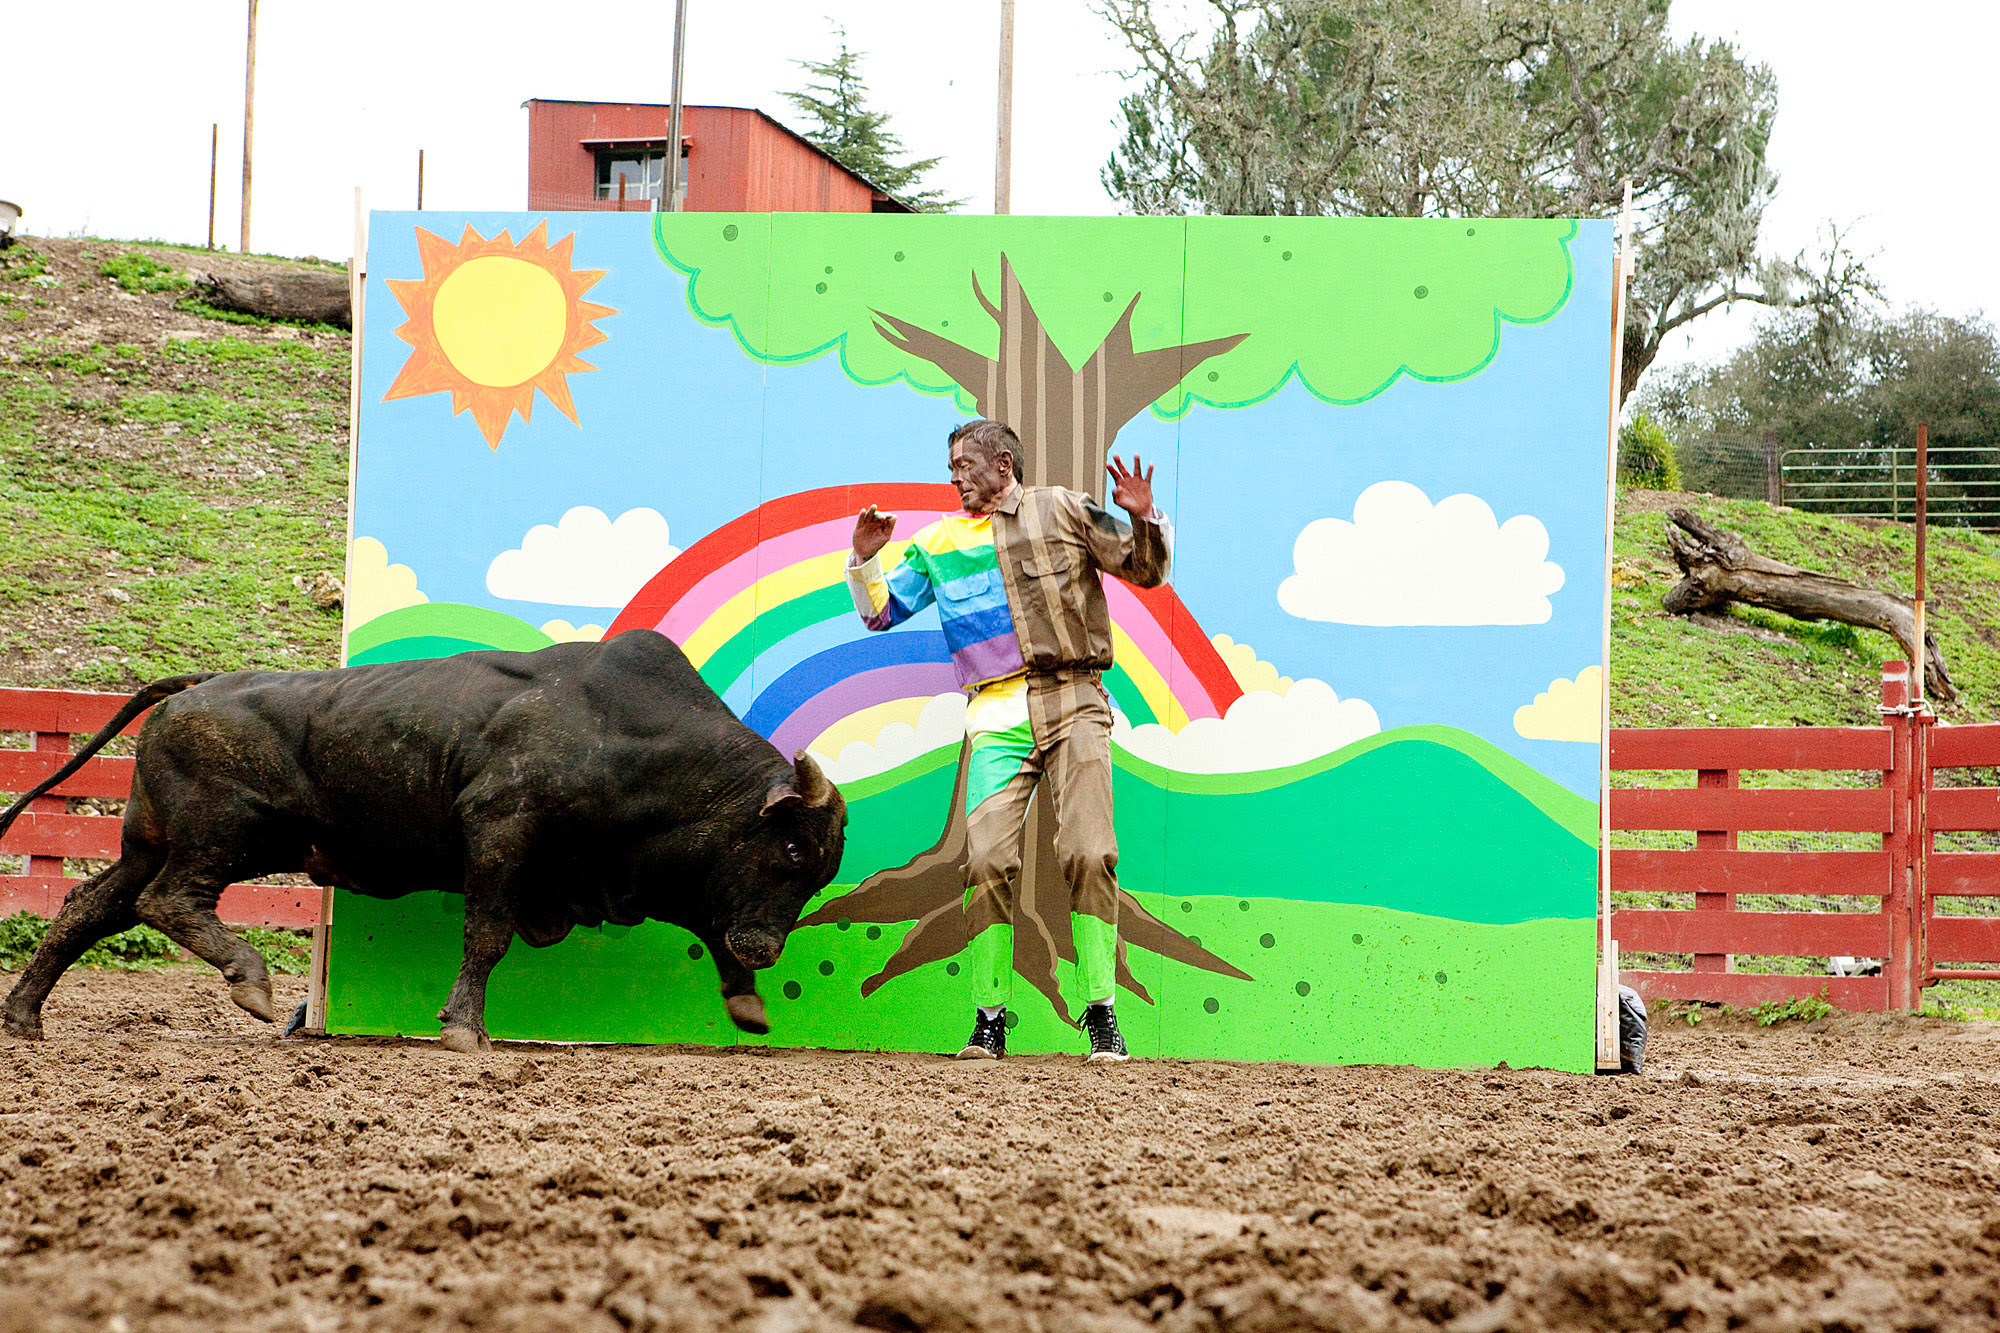 Johnny Knoxville disguised partially as a rainbow while a bull charges at him